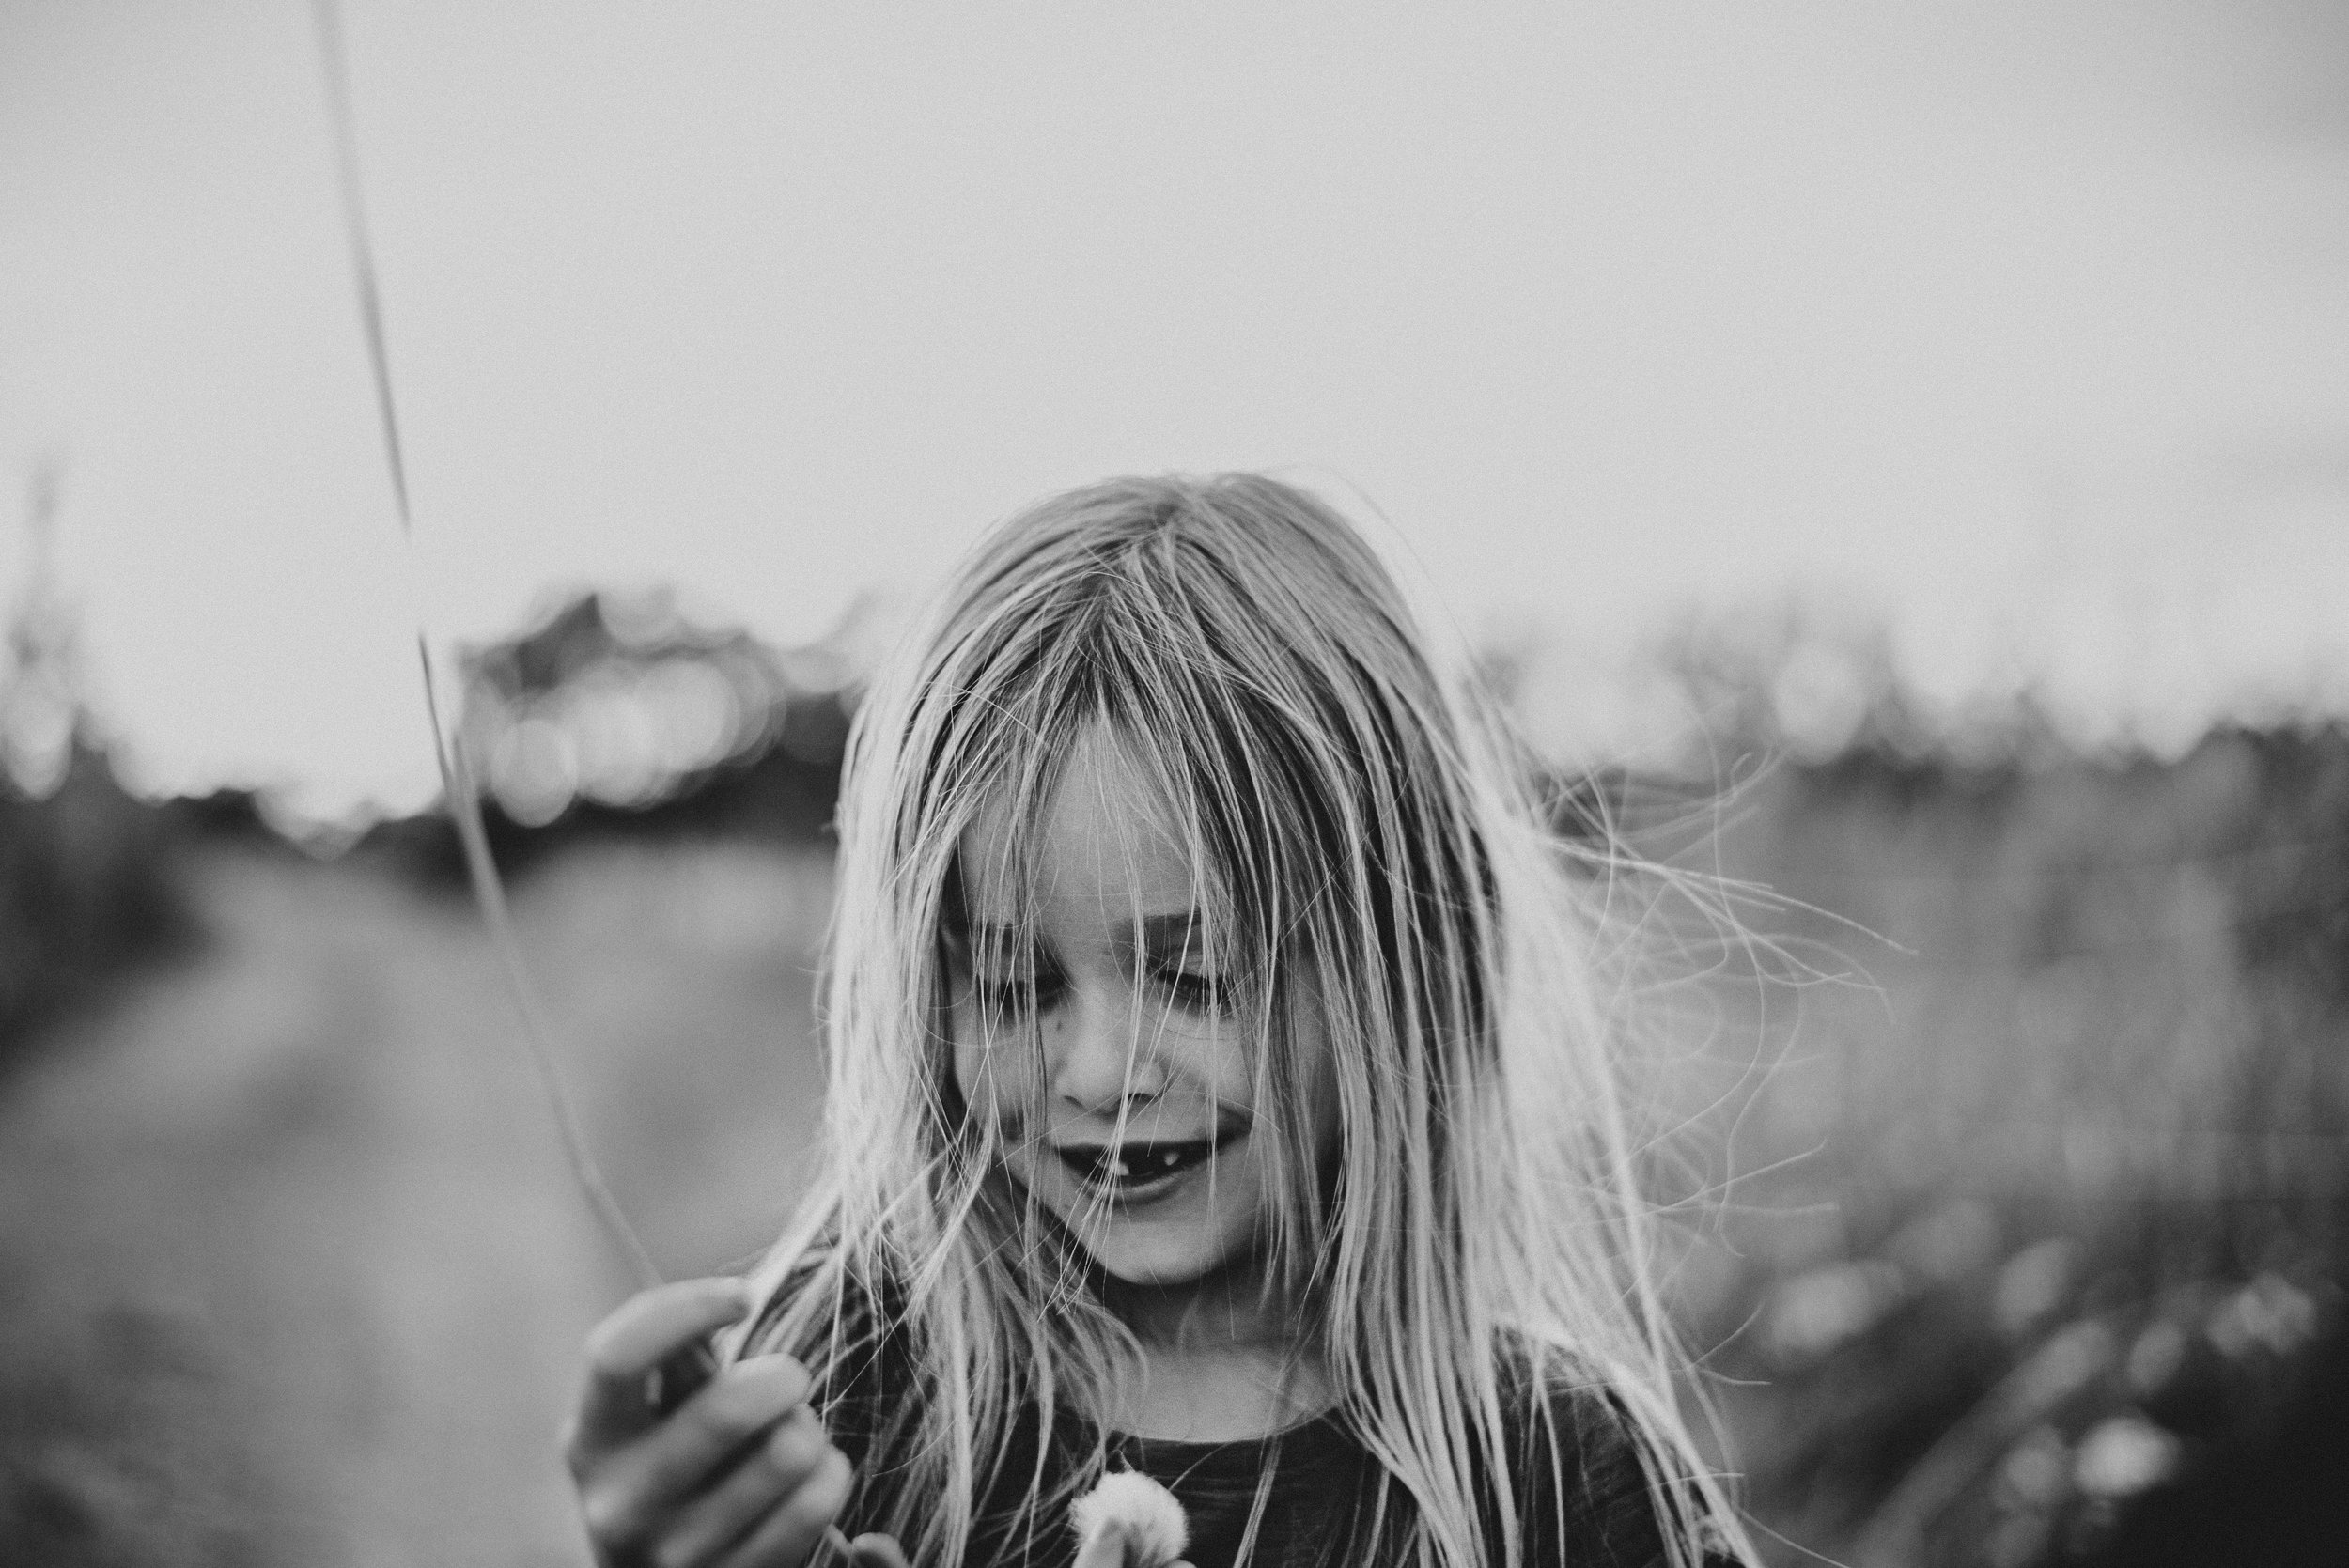 Young girl holds grass Essex UK Documentary Portrait Photographer